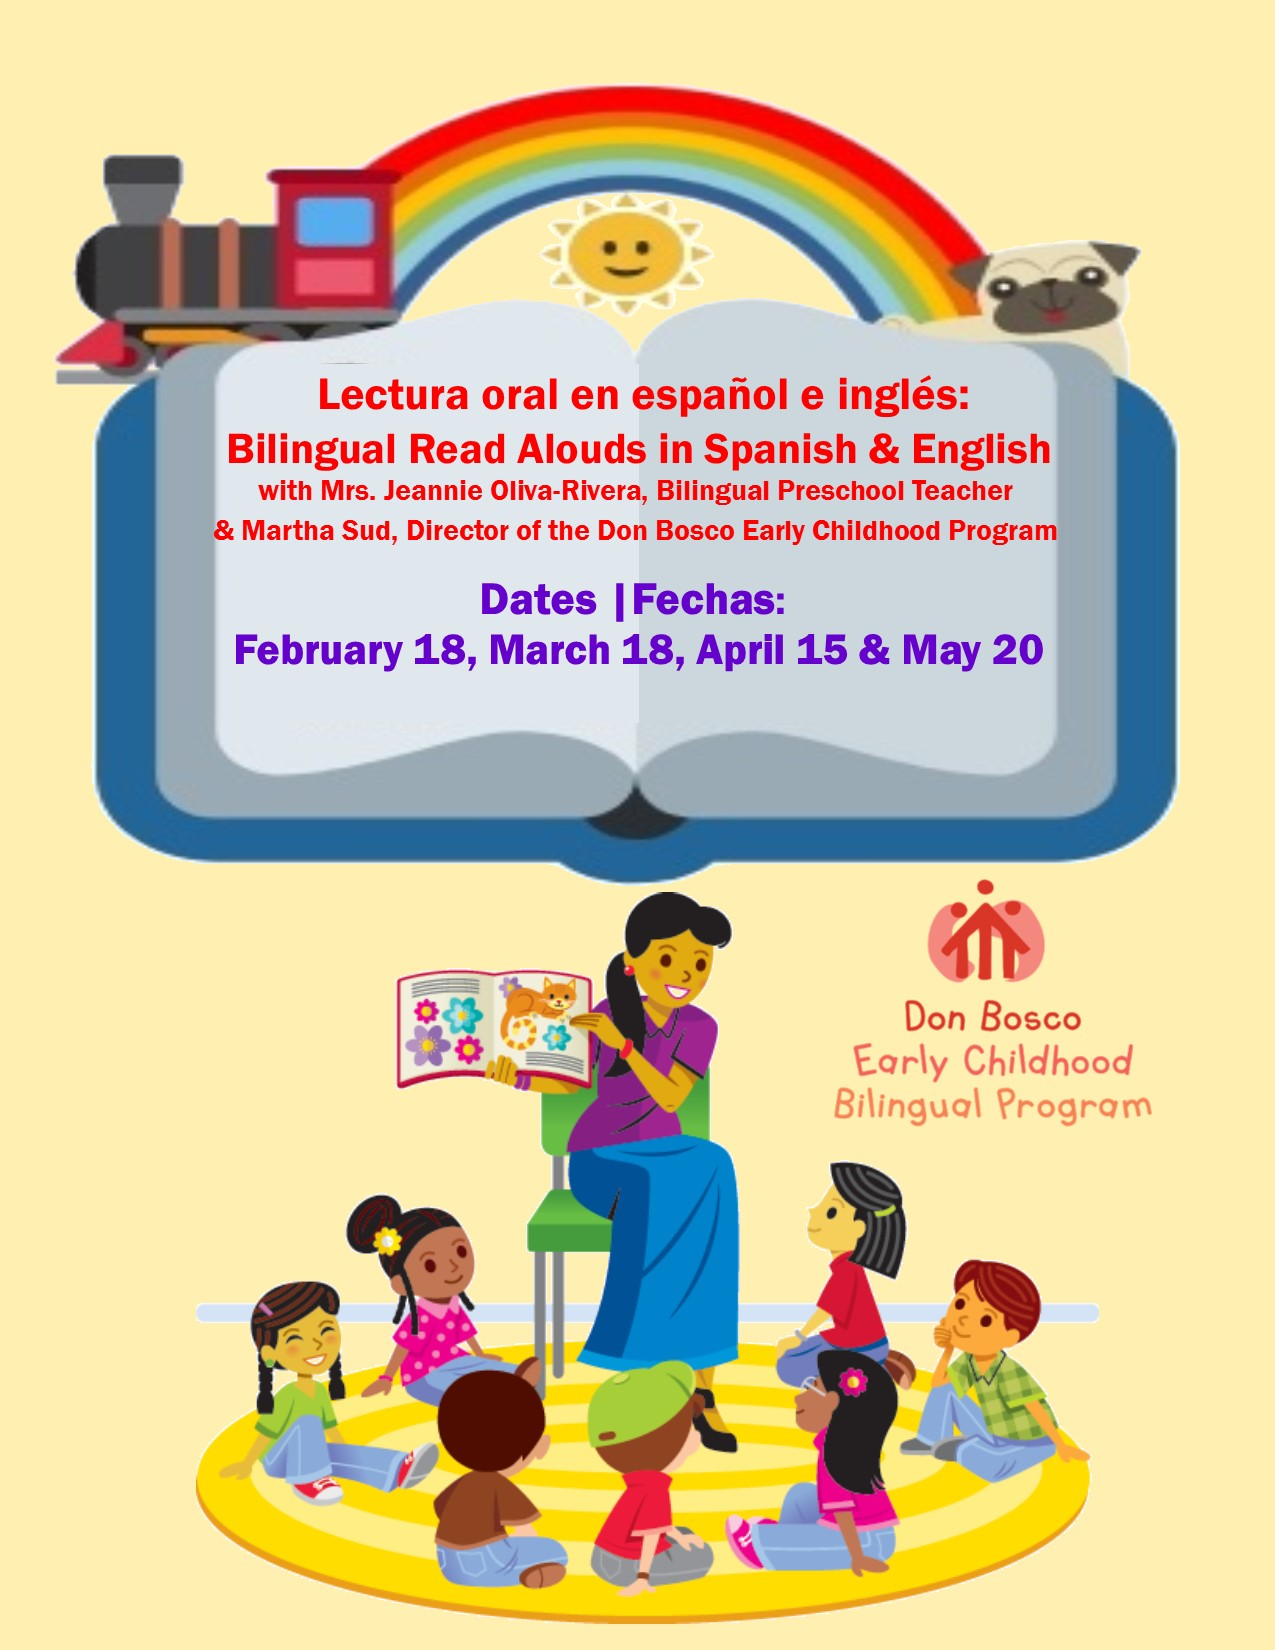 ONLINE Bilingual Read Aloud in Spanish & English in collaboration with Don Bosco Early Childhood Bilingual program at Port Chester-Rye Brook Library